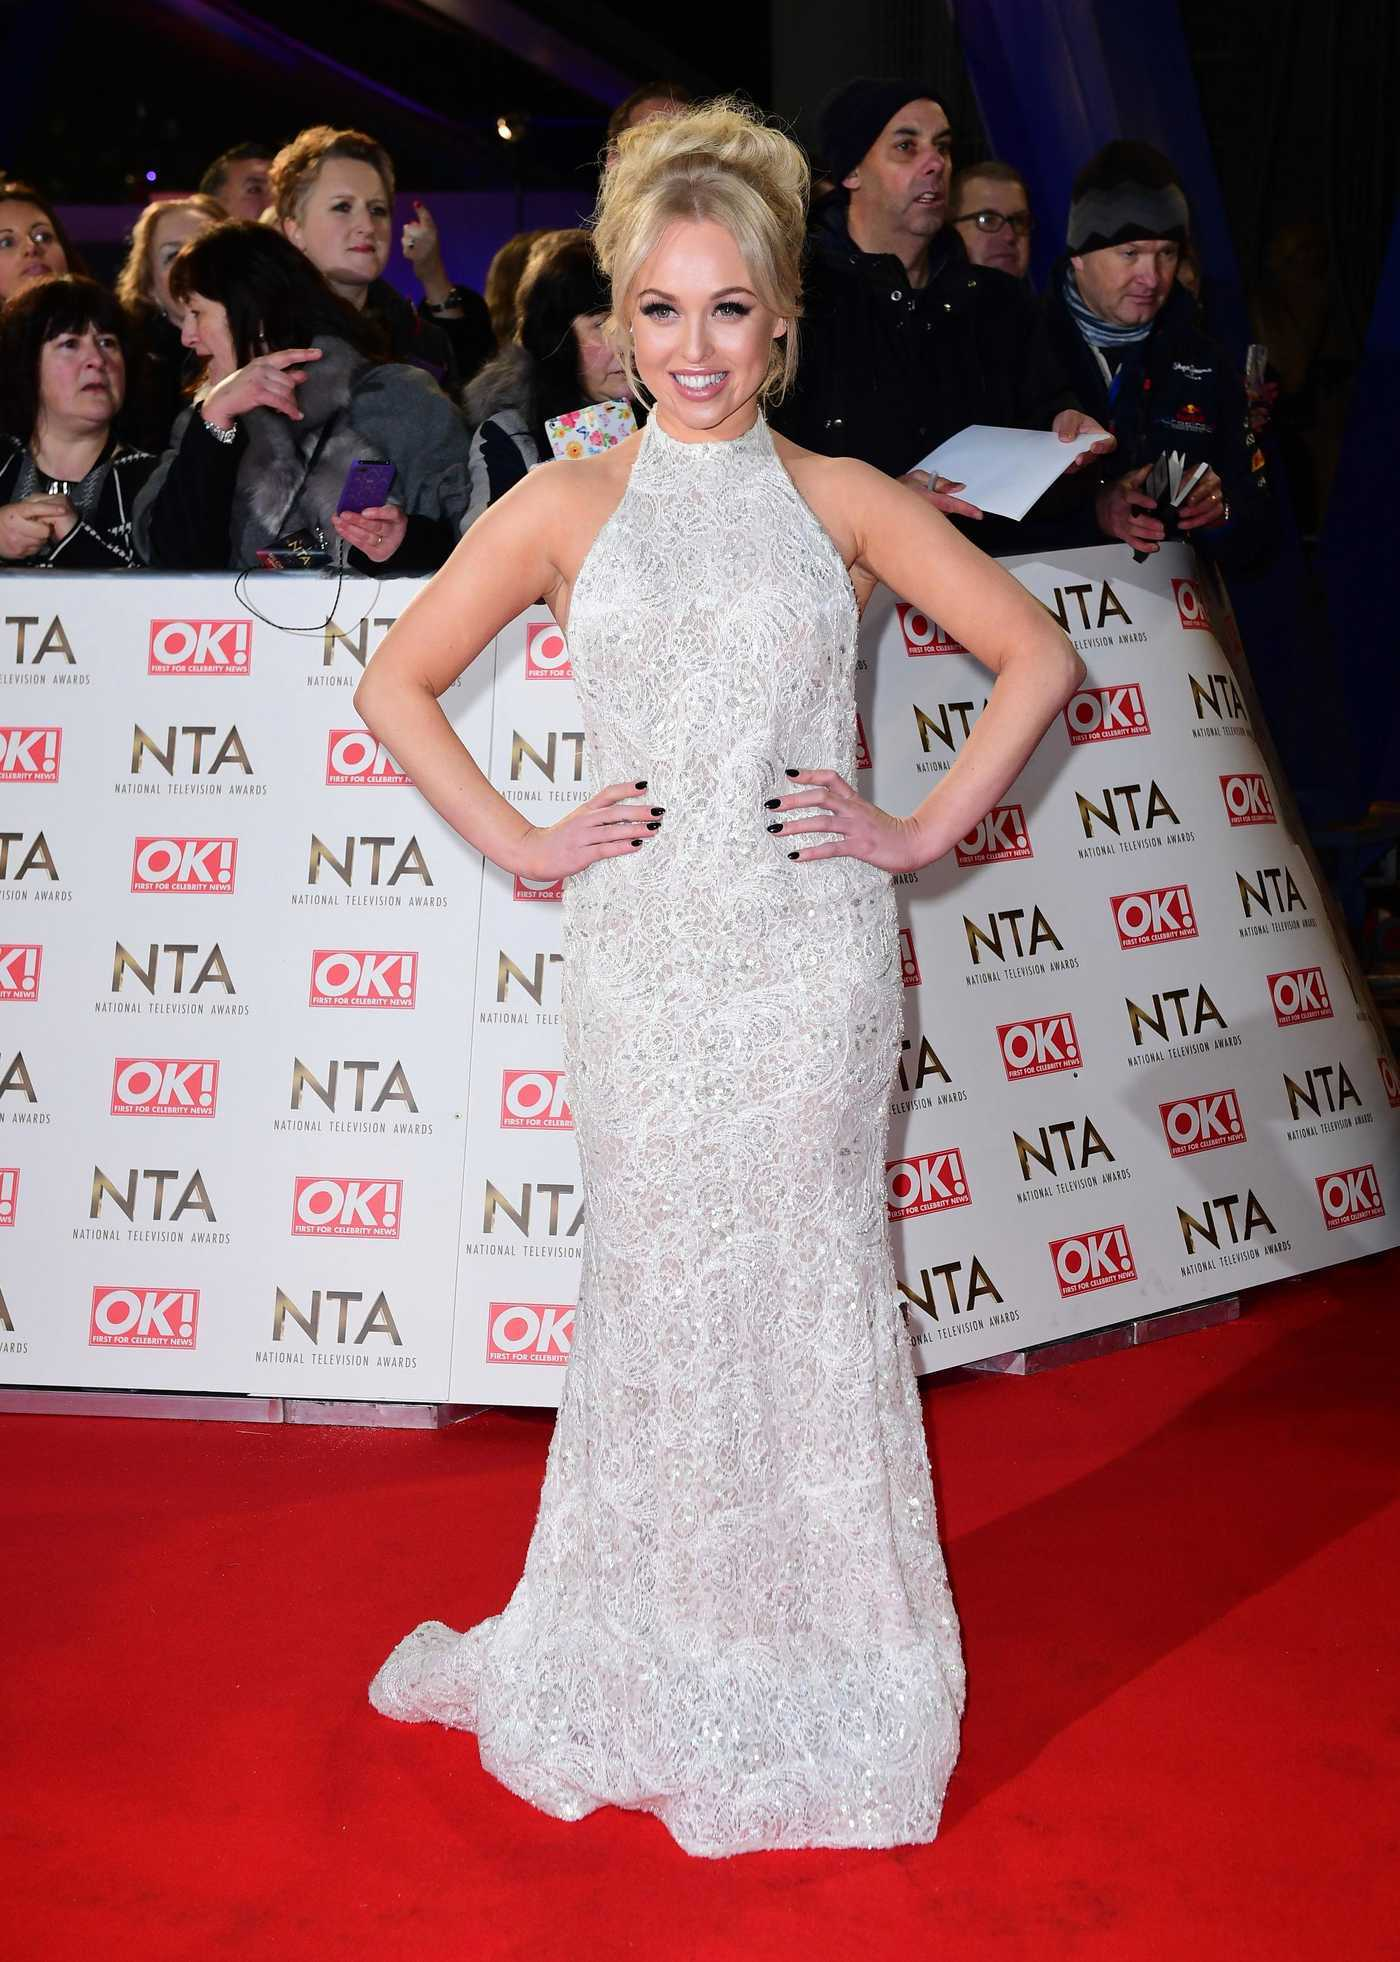 Jorgie Porter at the National Television Awards in London 01/25/2017